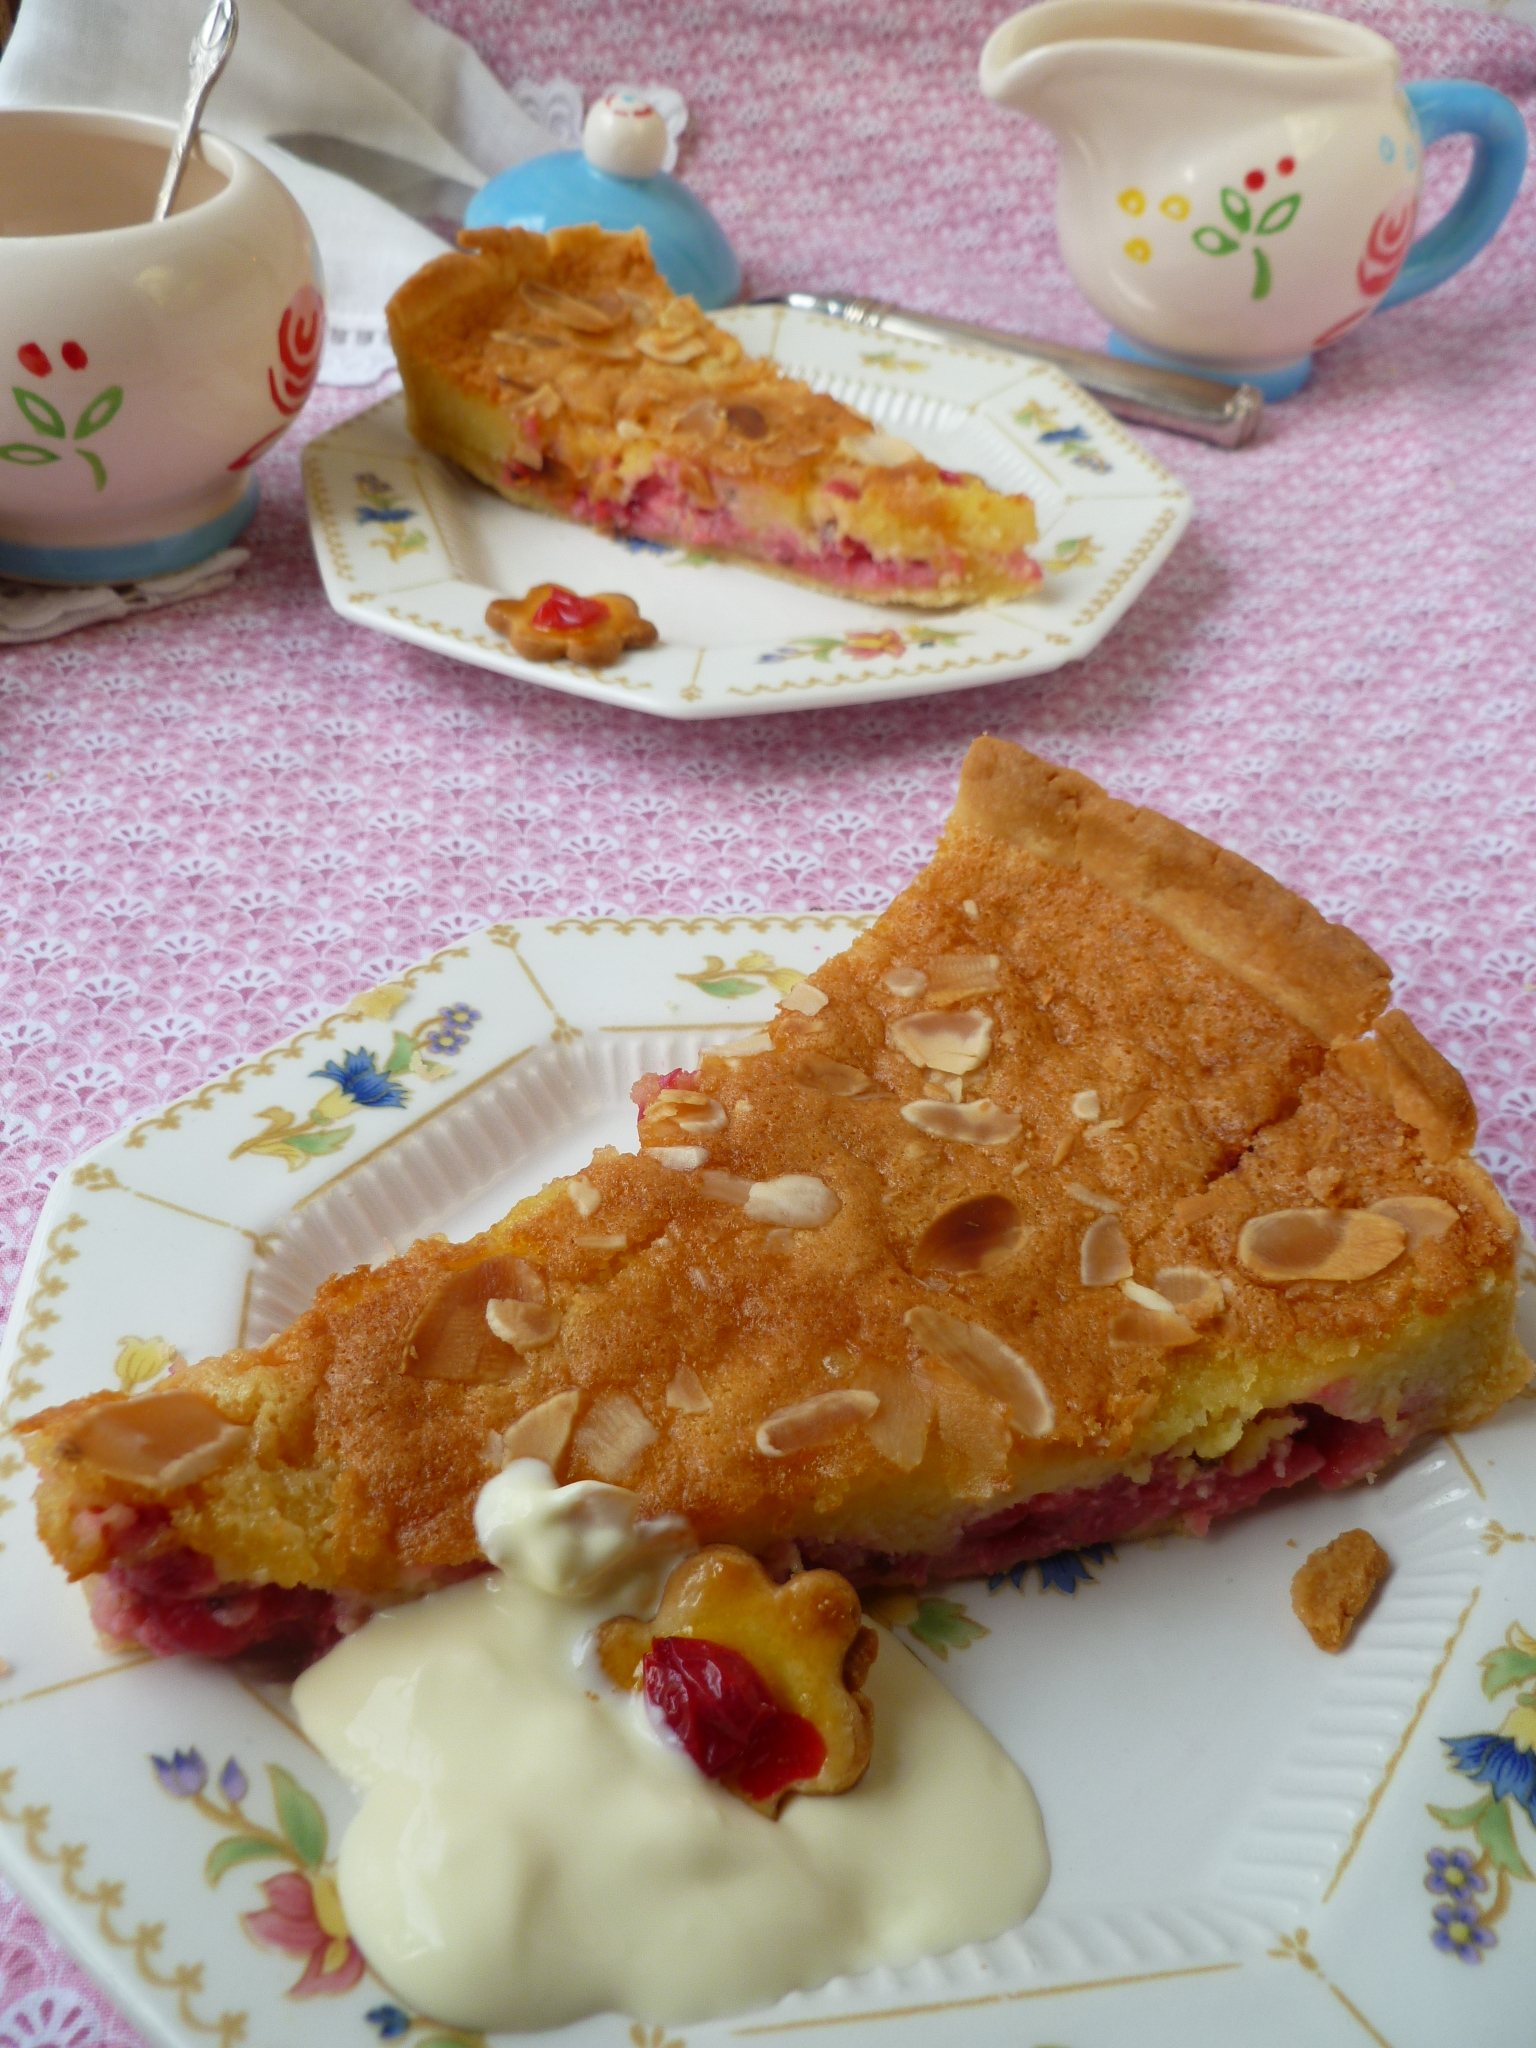 Fresh Redcurrant Tart with Shortbread Crust